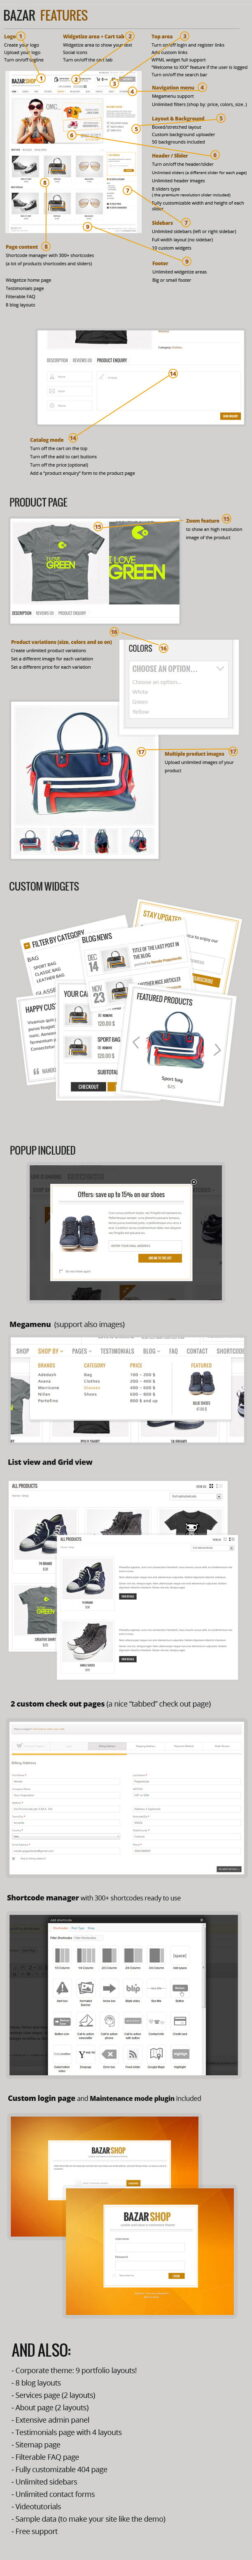 Bazar-Shop - Bazar Shop Multi-Purpose e-Commerce Theme [year]